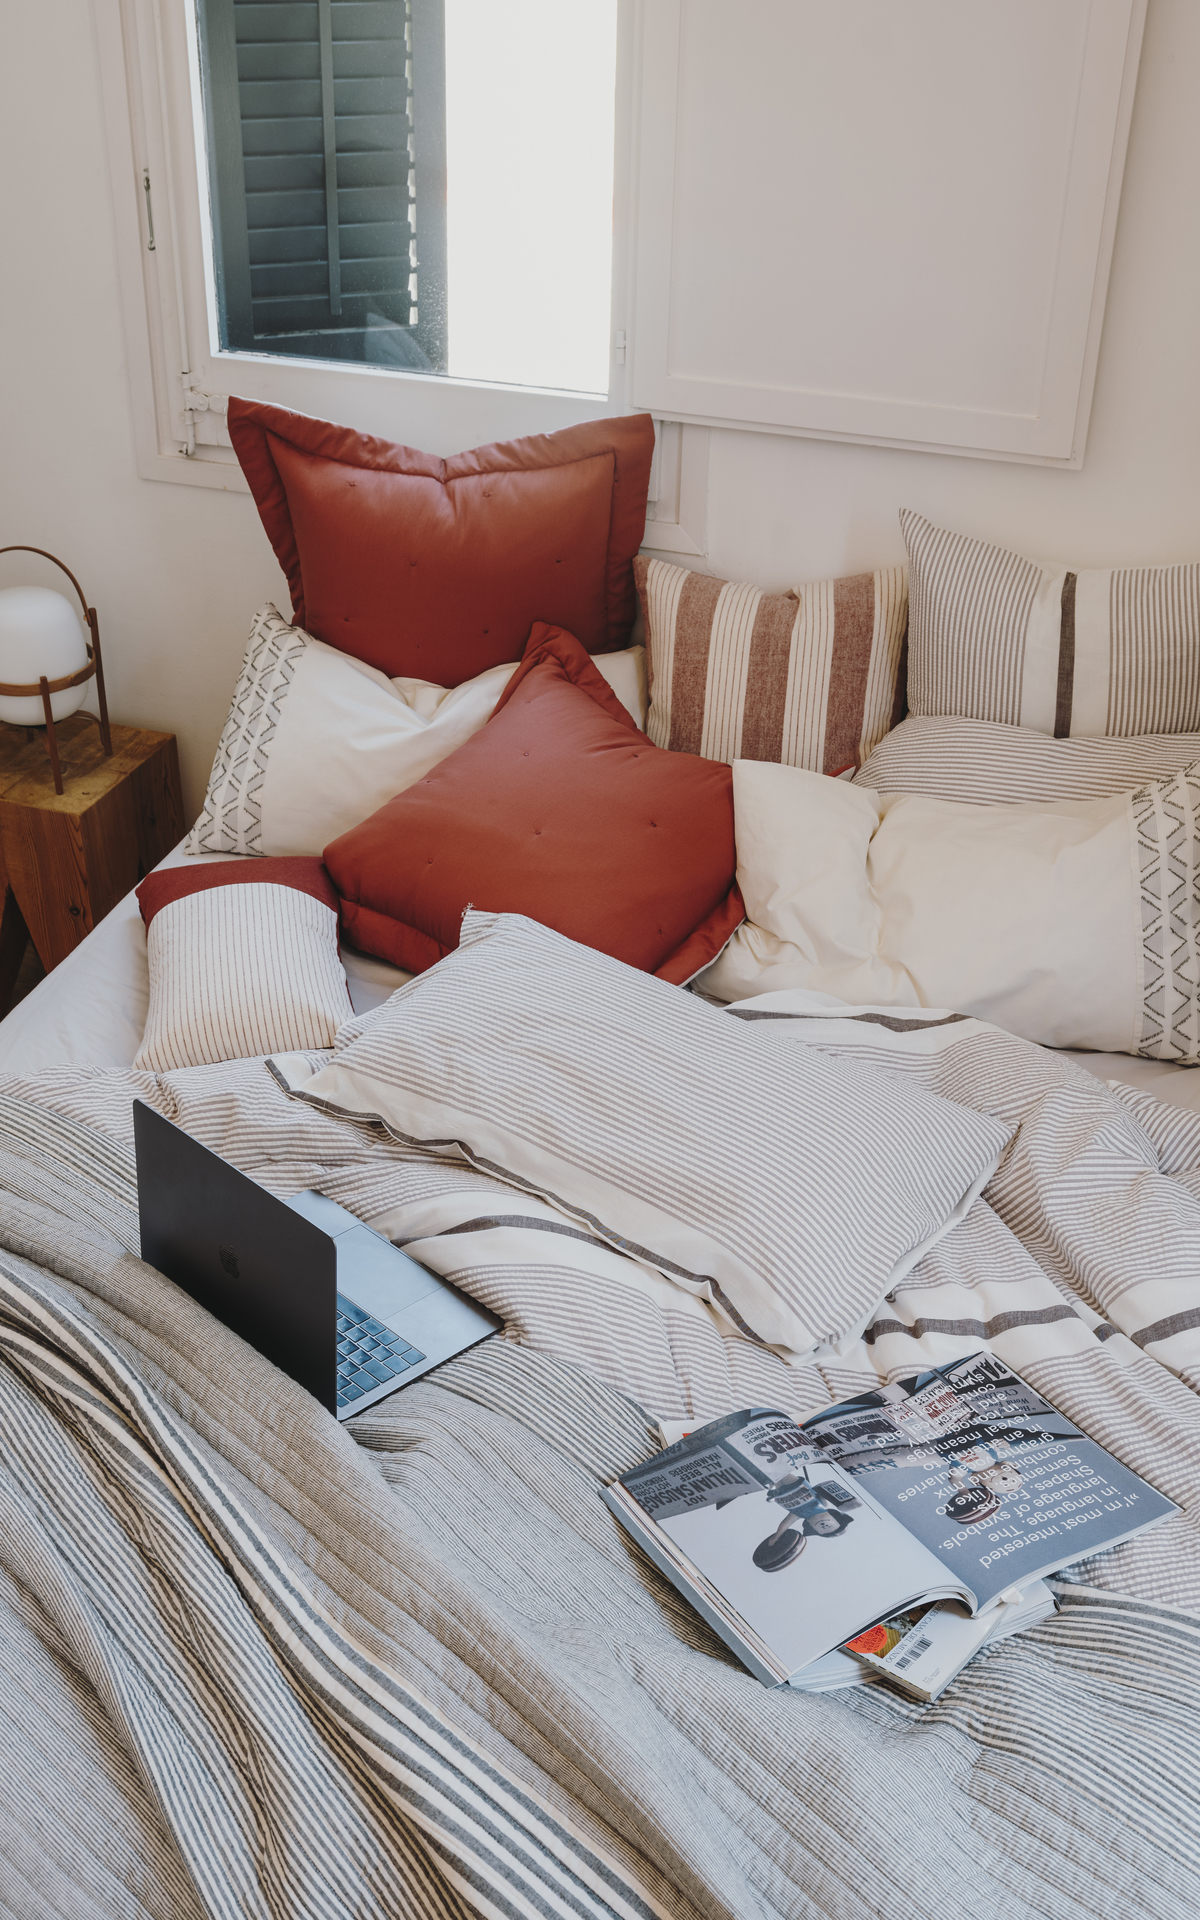 Bed with a textura bedsheets and pillows